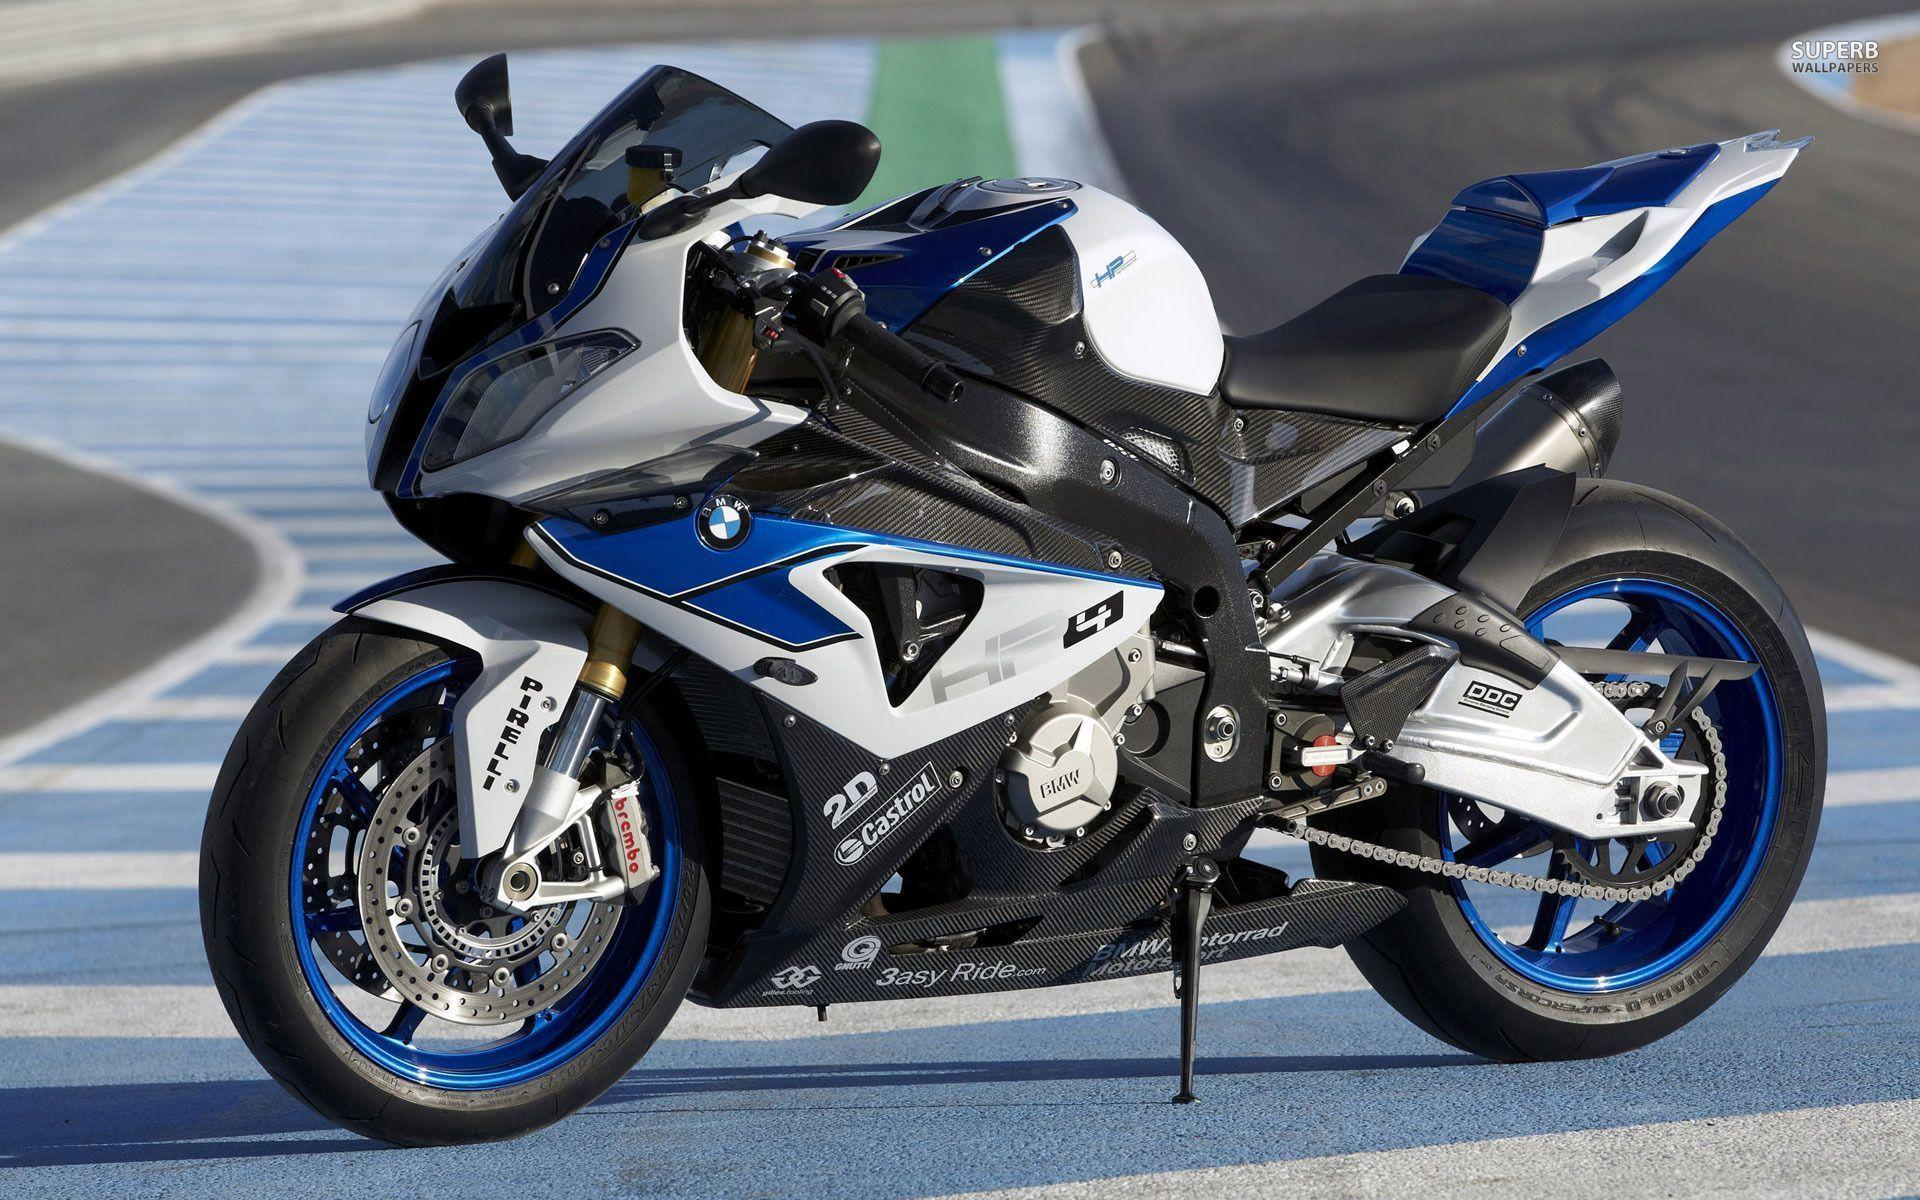 BMW S1000RR Wallpapers - Wallpaper Cave